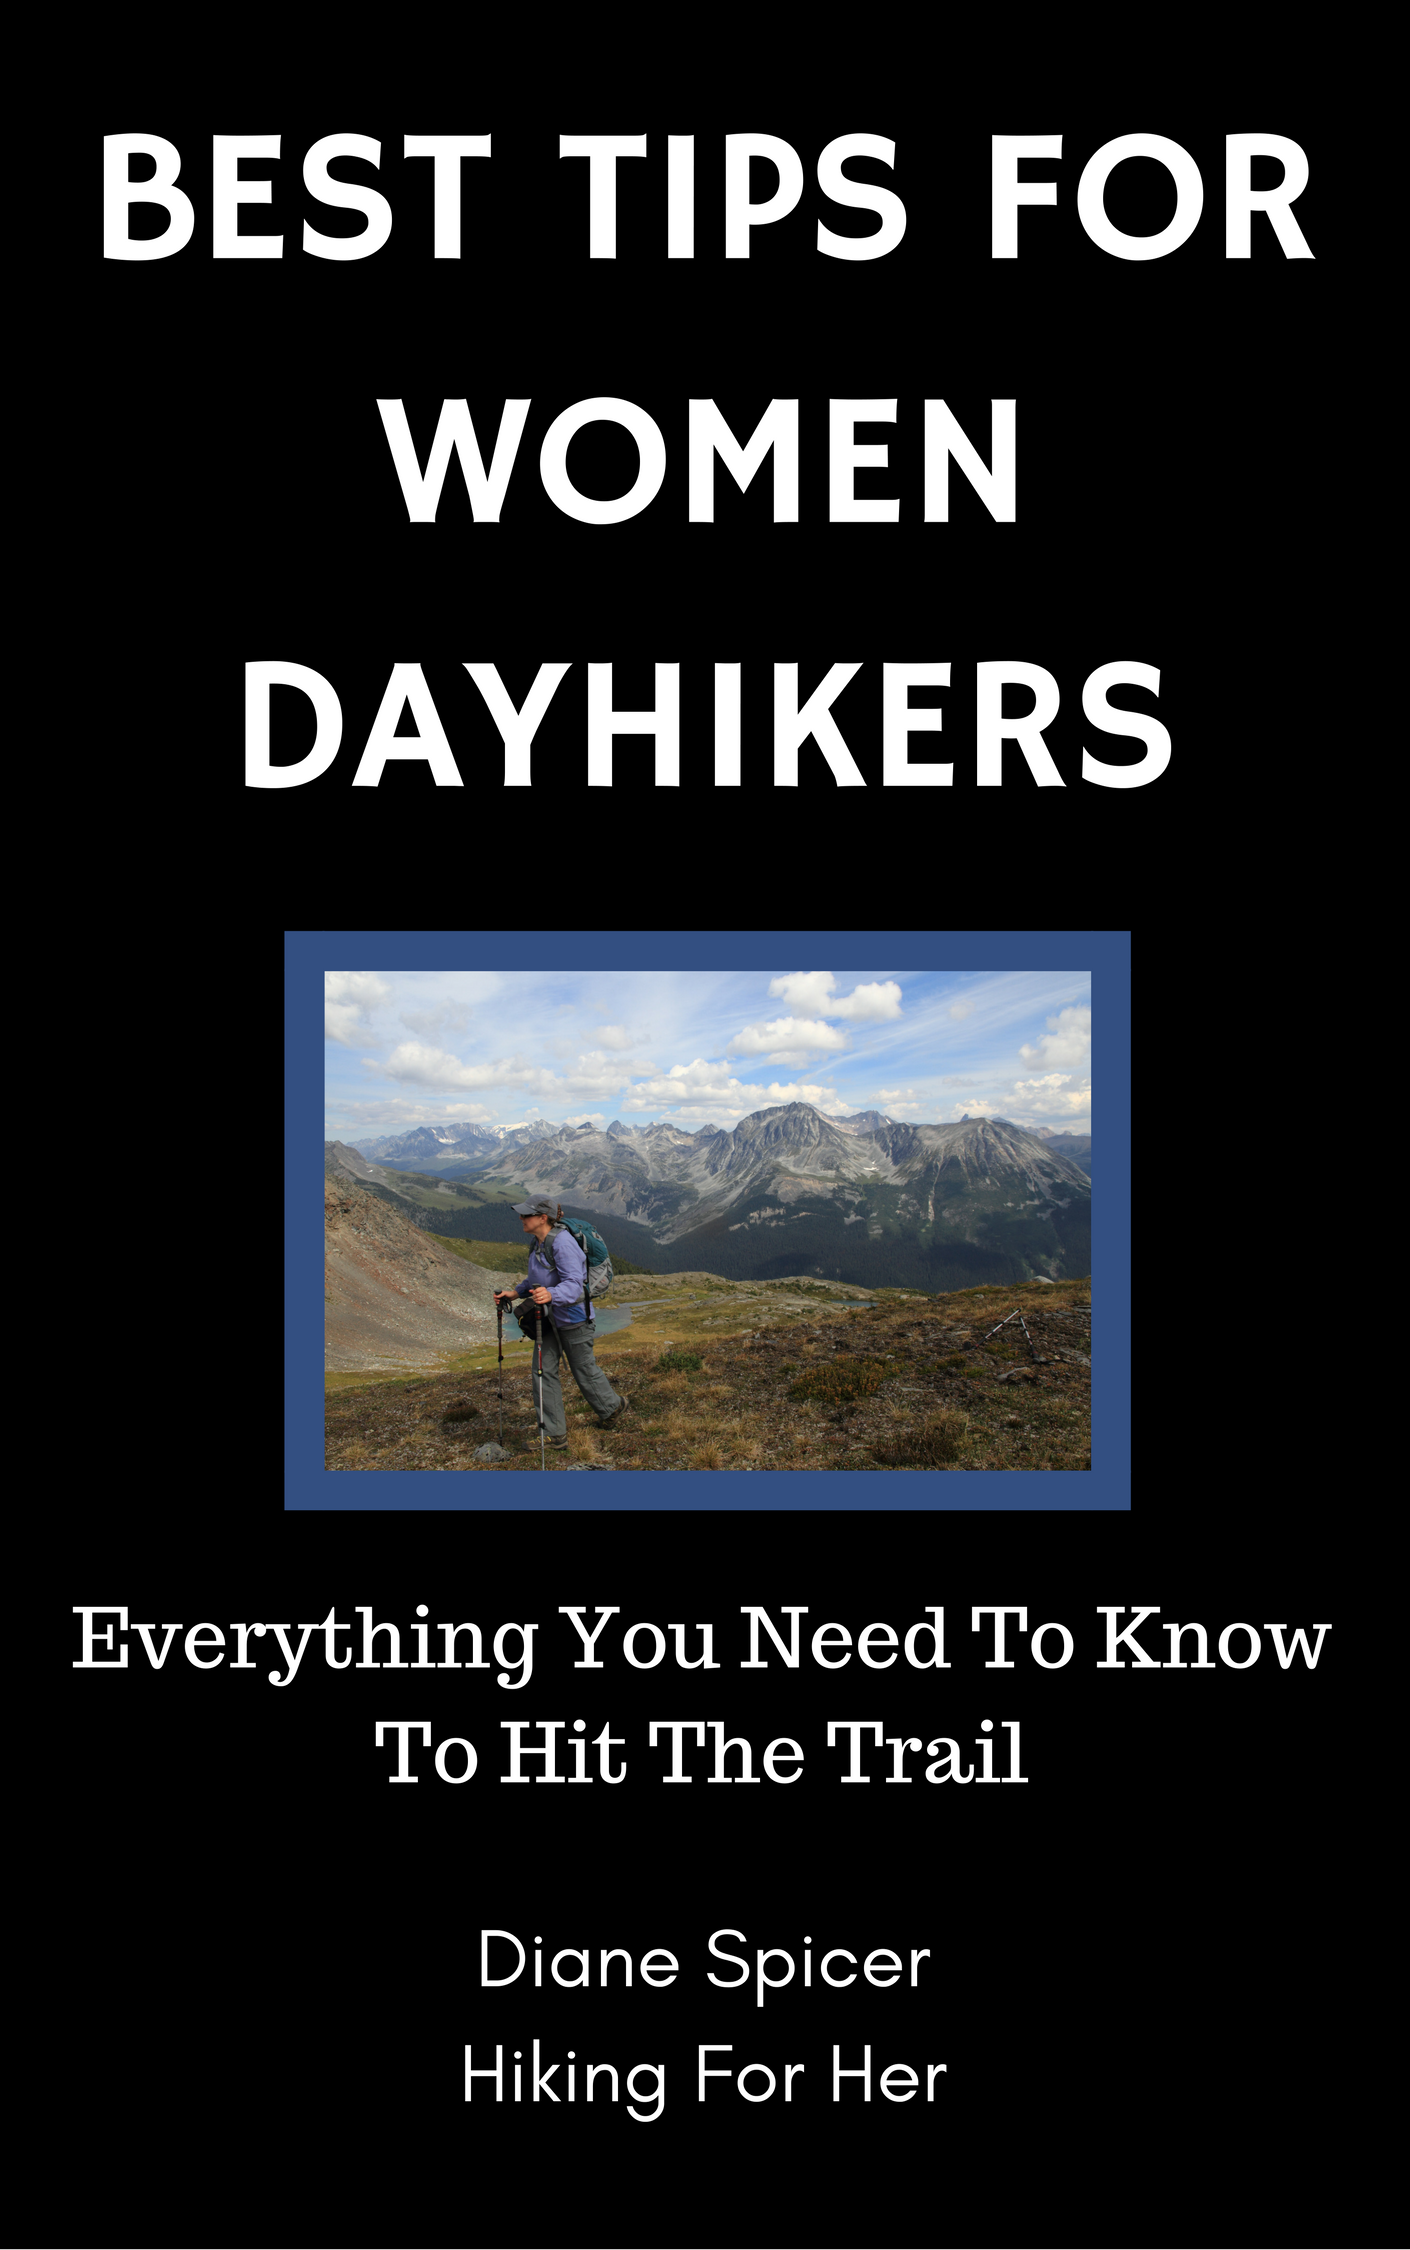 Hiking For Her's Best Tips For Women Dayhikers book will get you on the trail in safety, comfort and style. #hiking #dayhikes #hikingtips #trails #womenhikers #hike #hikingadvice